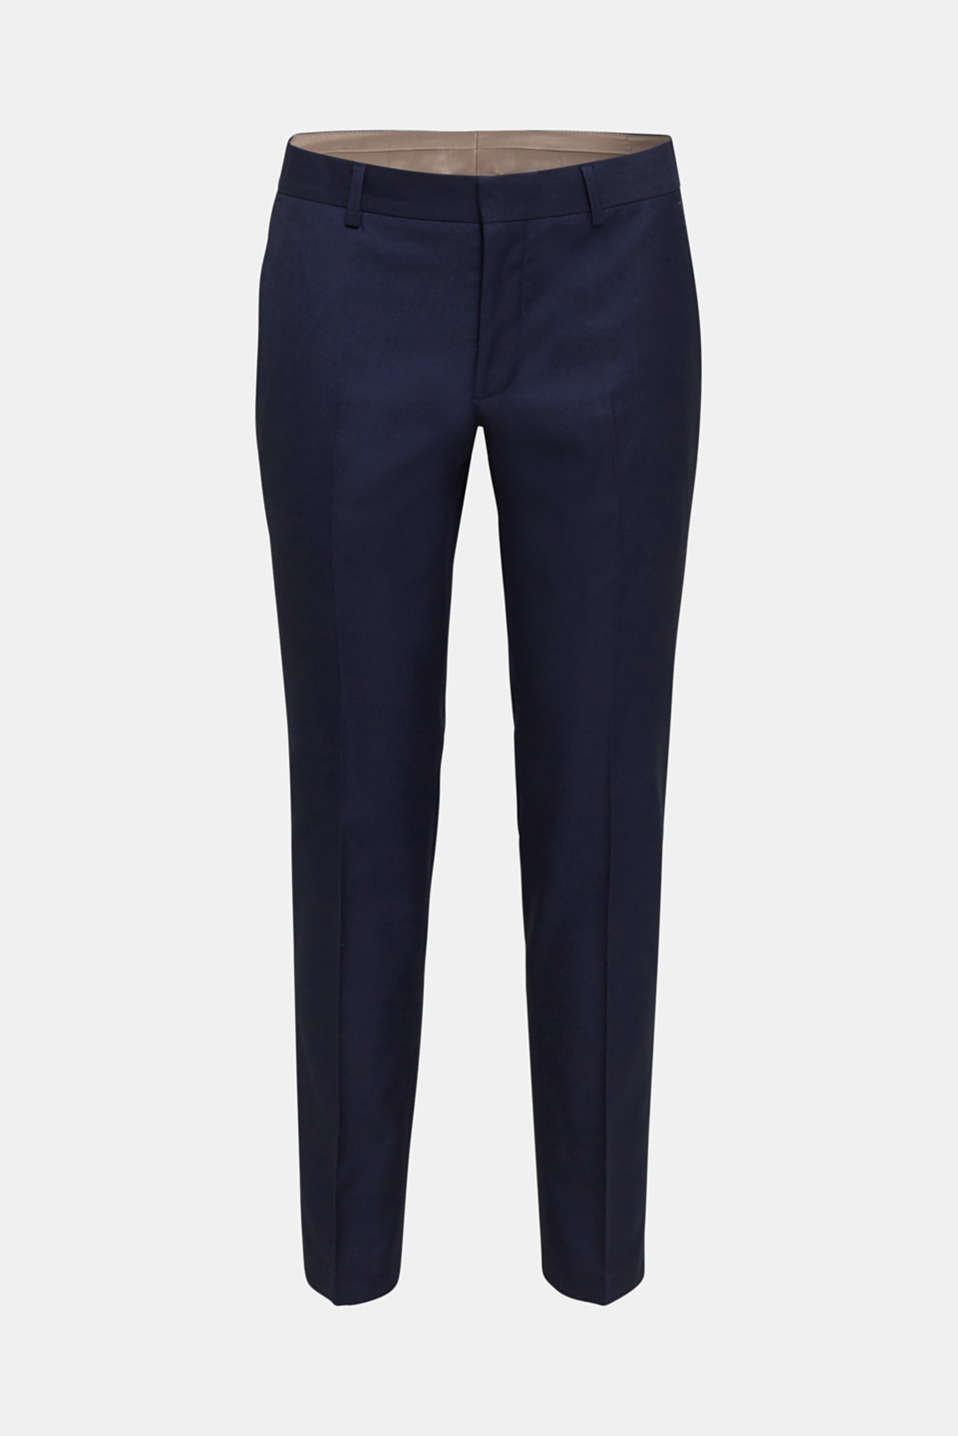 BLUE DINNER JACKET Mix + Match: Trousers with side stripes, NAVY, detail image number 6